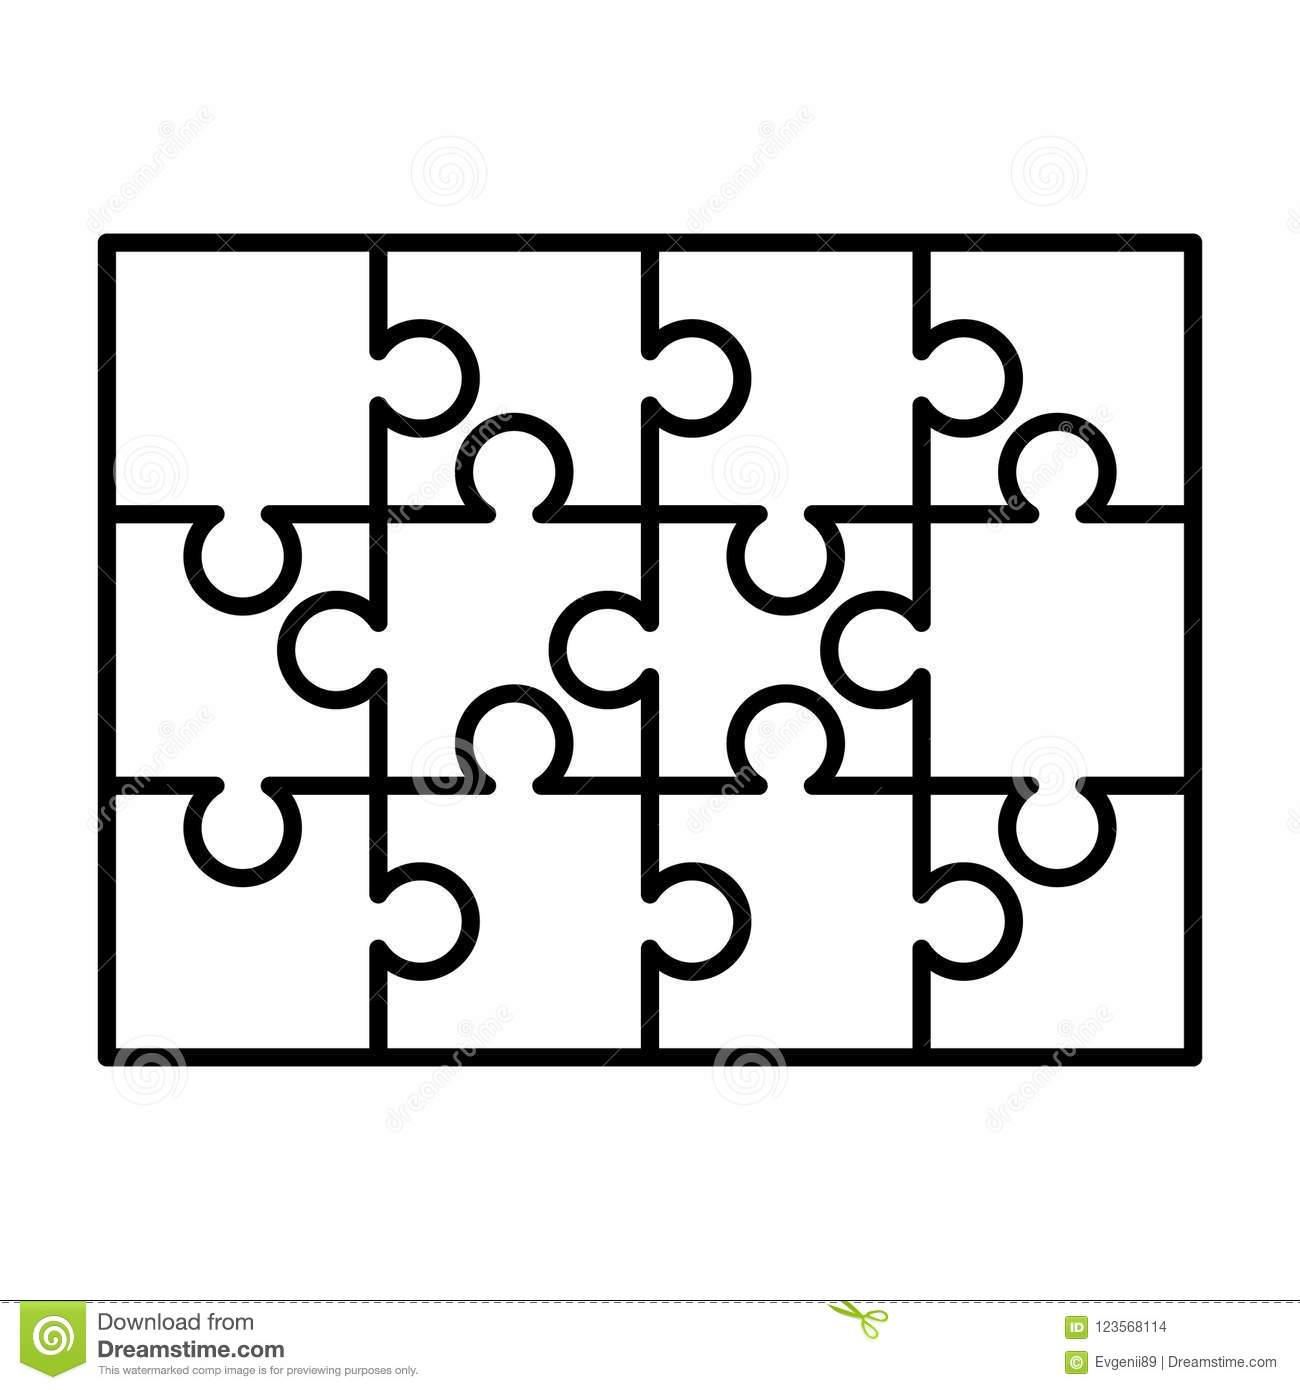 image relating to Printable Puzzle Template identified as 12 White Puzzles Components Organized Within A Rectangle Condition